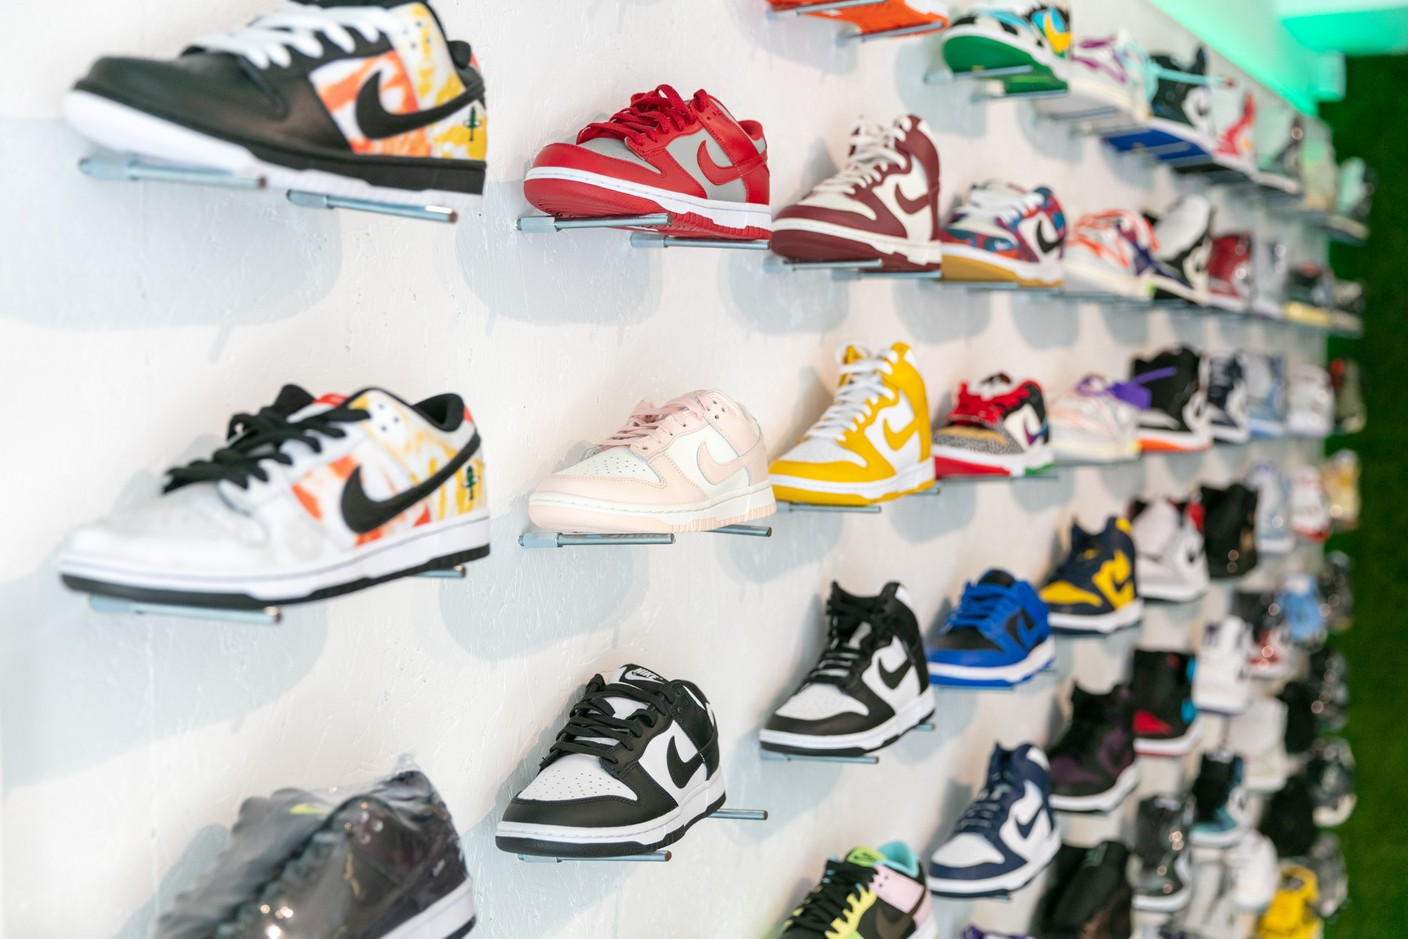 Nike is the most requested brand and therefore the most present at The Source. (Photo: Romain Gamba / Maison Moderne)